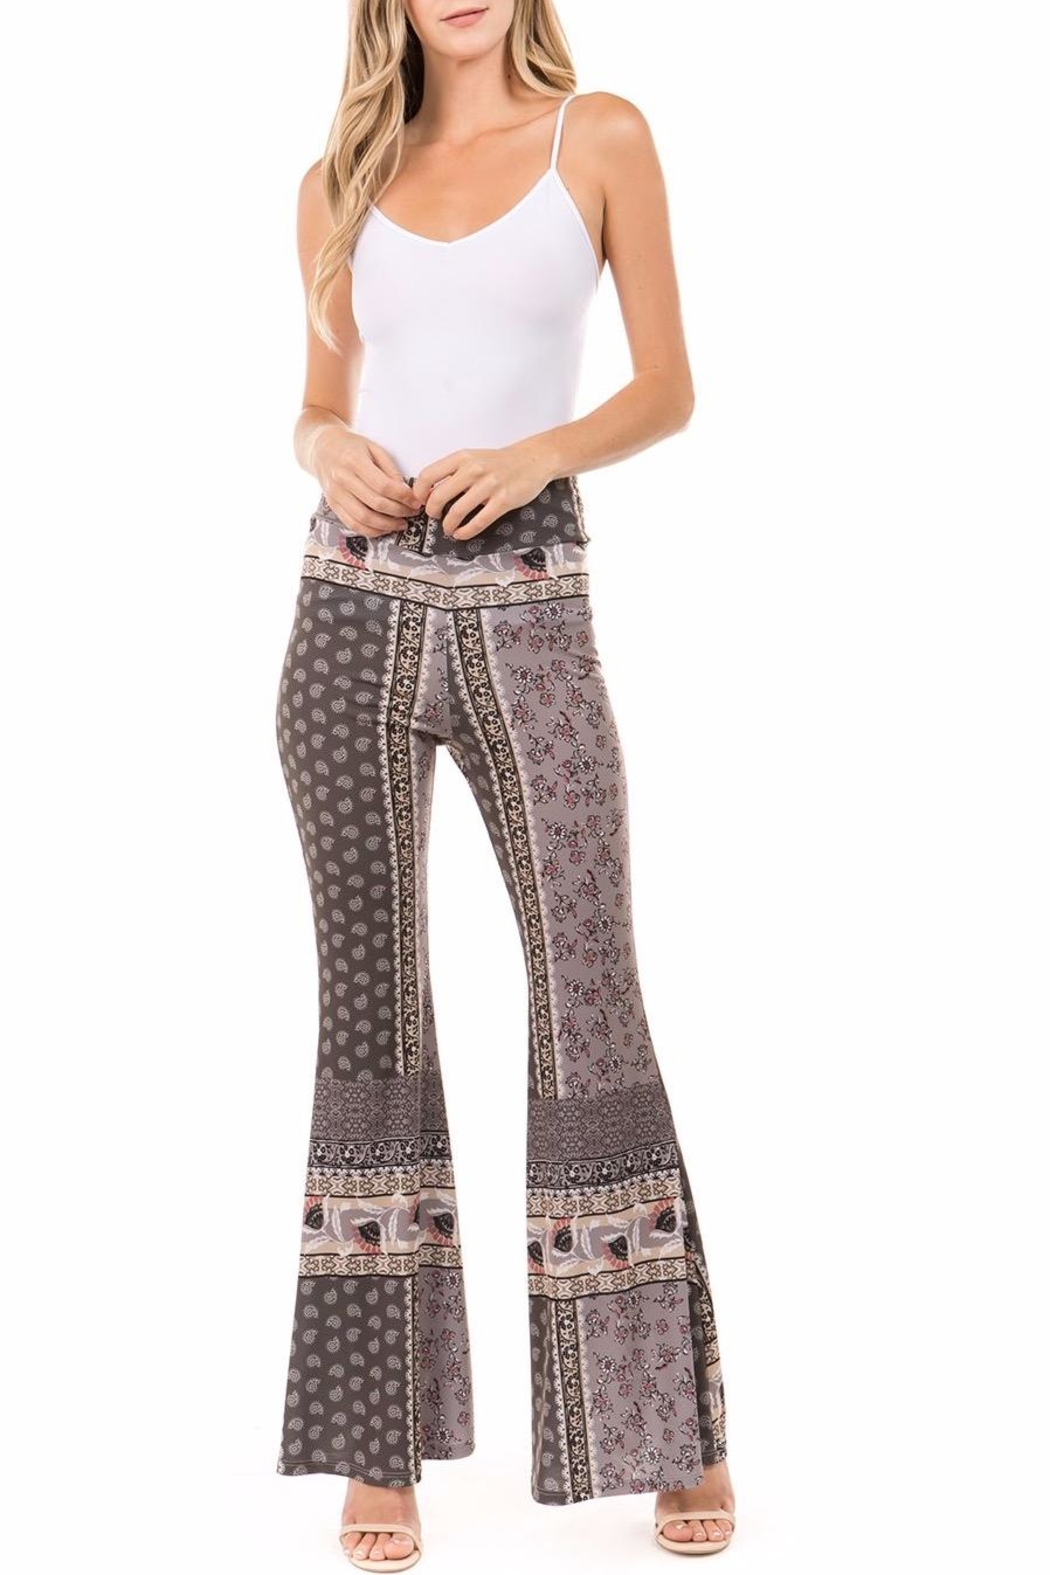 Vava by Joy Hahn Tallulah Printed Pants - Main Image